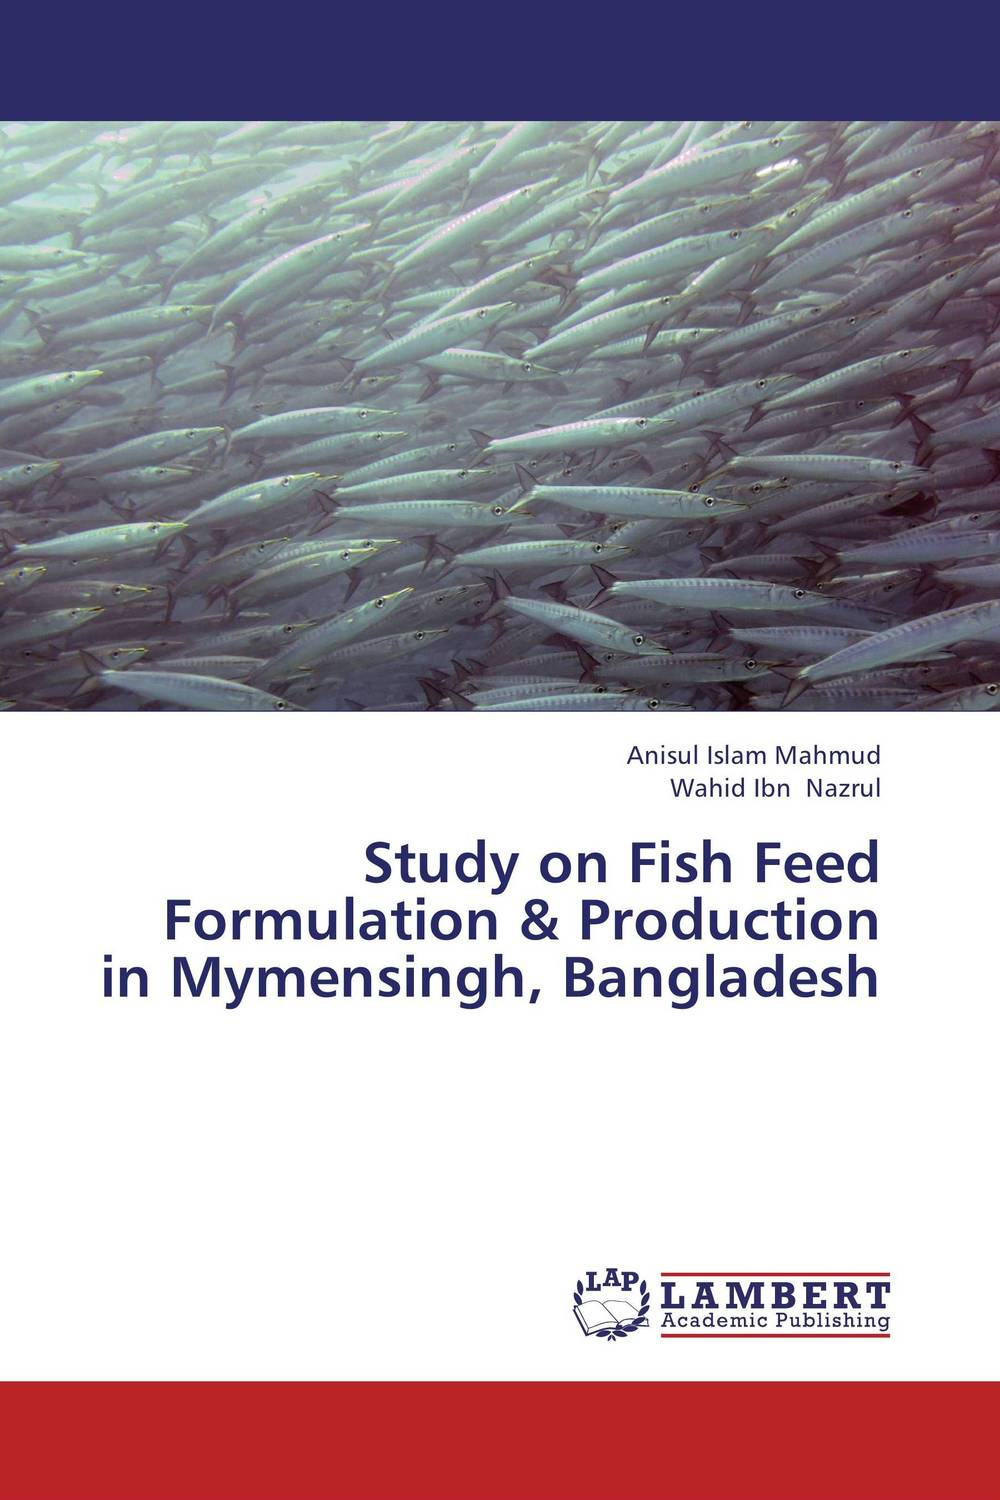 Study on Fish Feed Formulation & Production in Mymensingh, Bangladesh